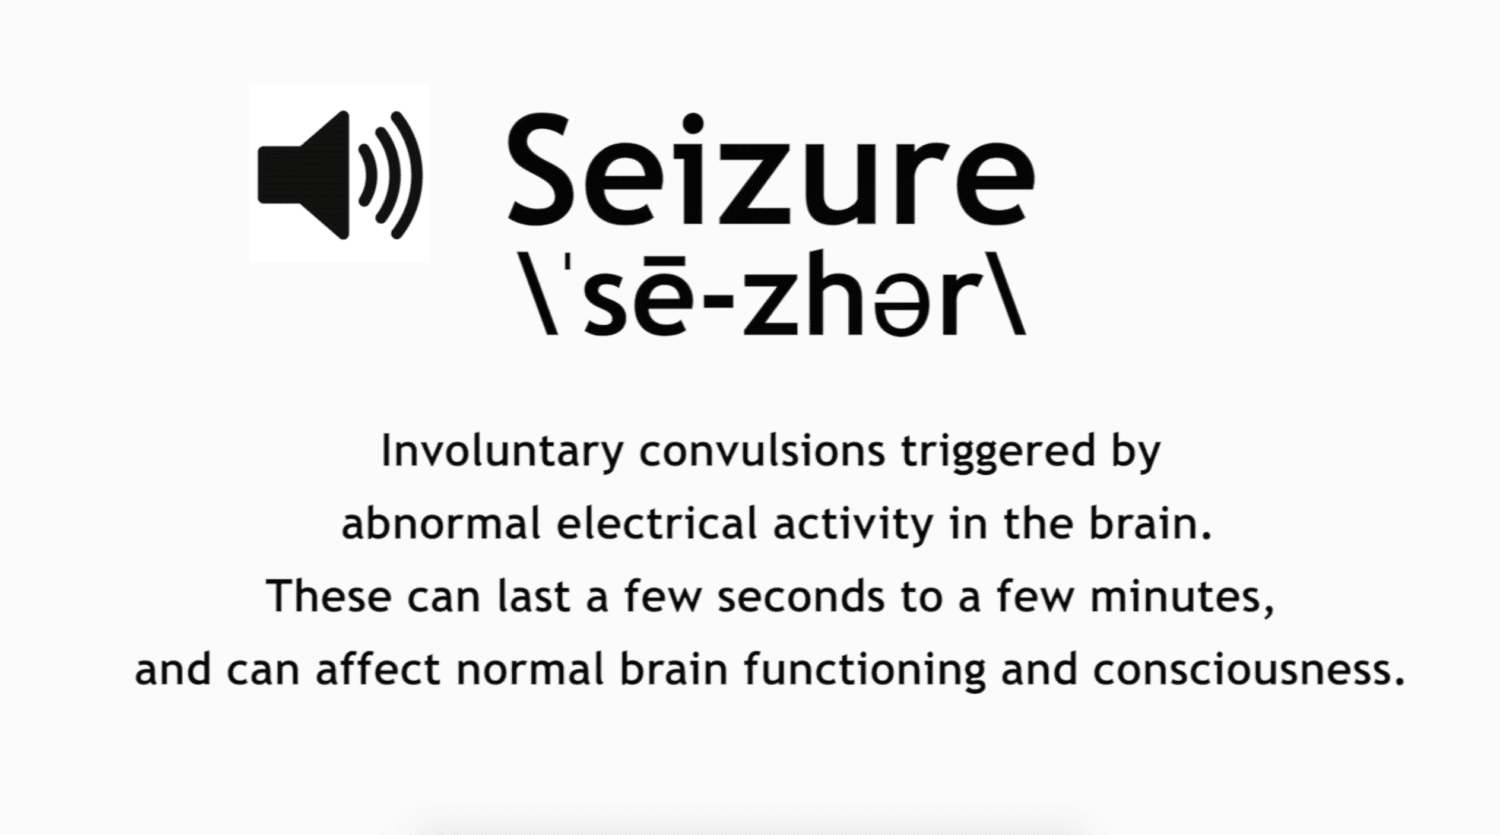 How to Pronounce Seizure | Video